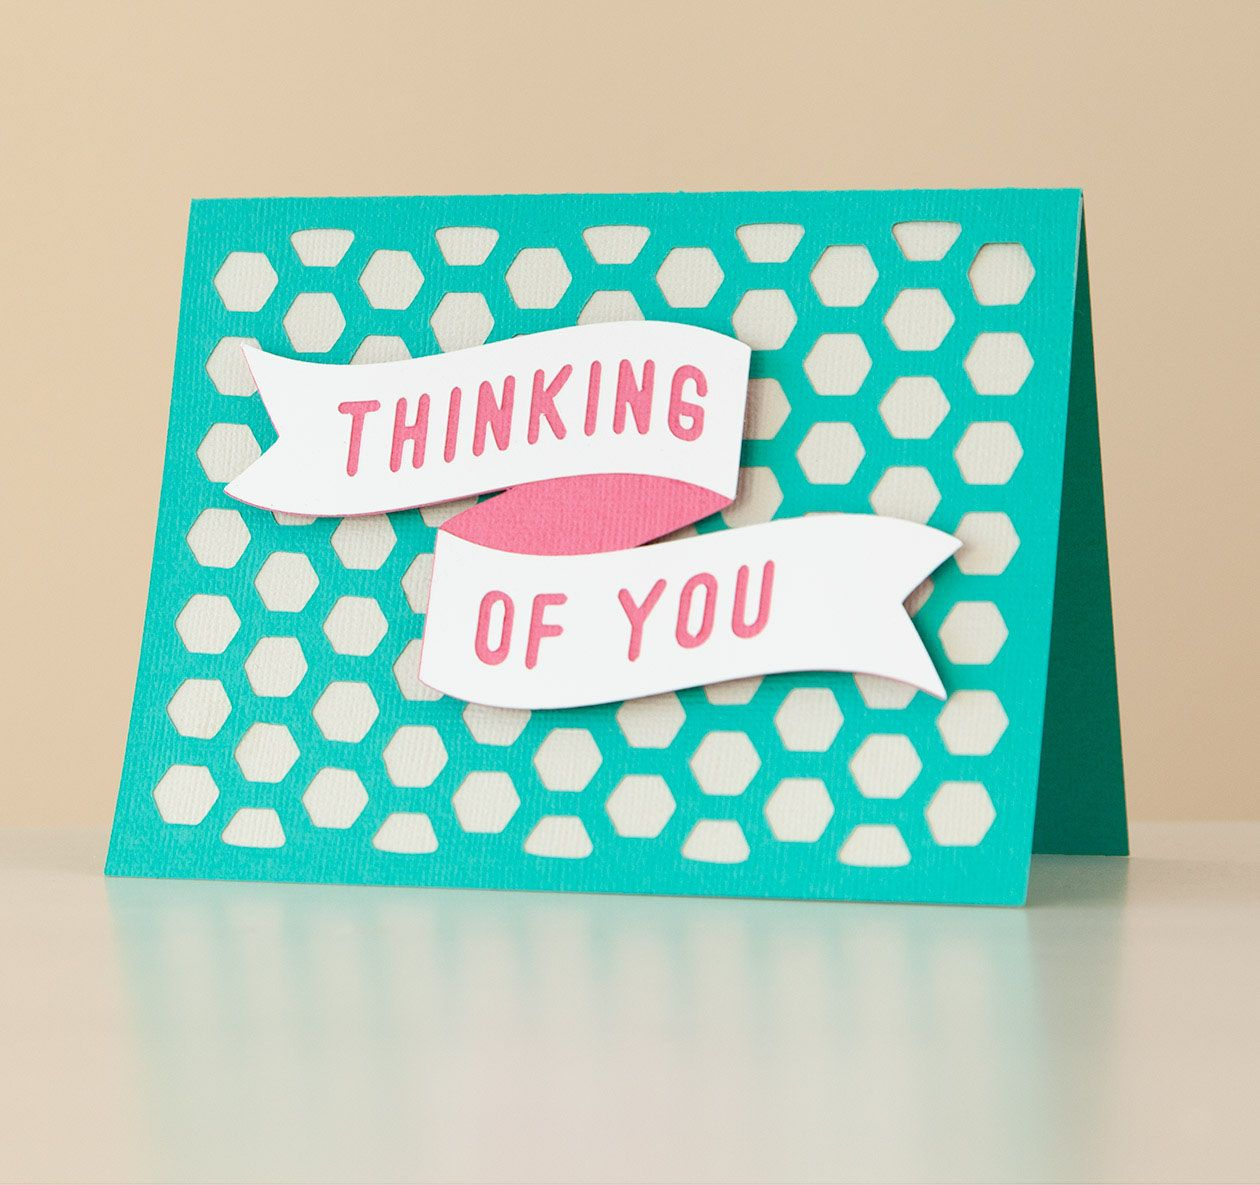 Spring Fling Cricut Cartridge Thinking Of You Card Make It Now With The Cricut Explore Machine In Cricut Design Spa Cards Handmade Card Making Cricut Cards